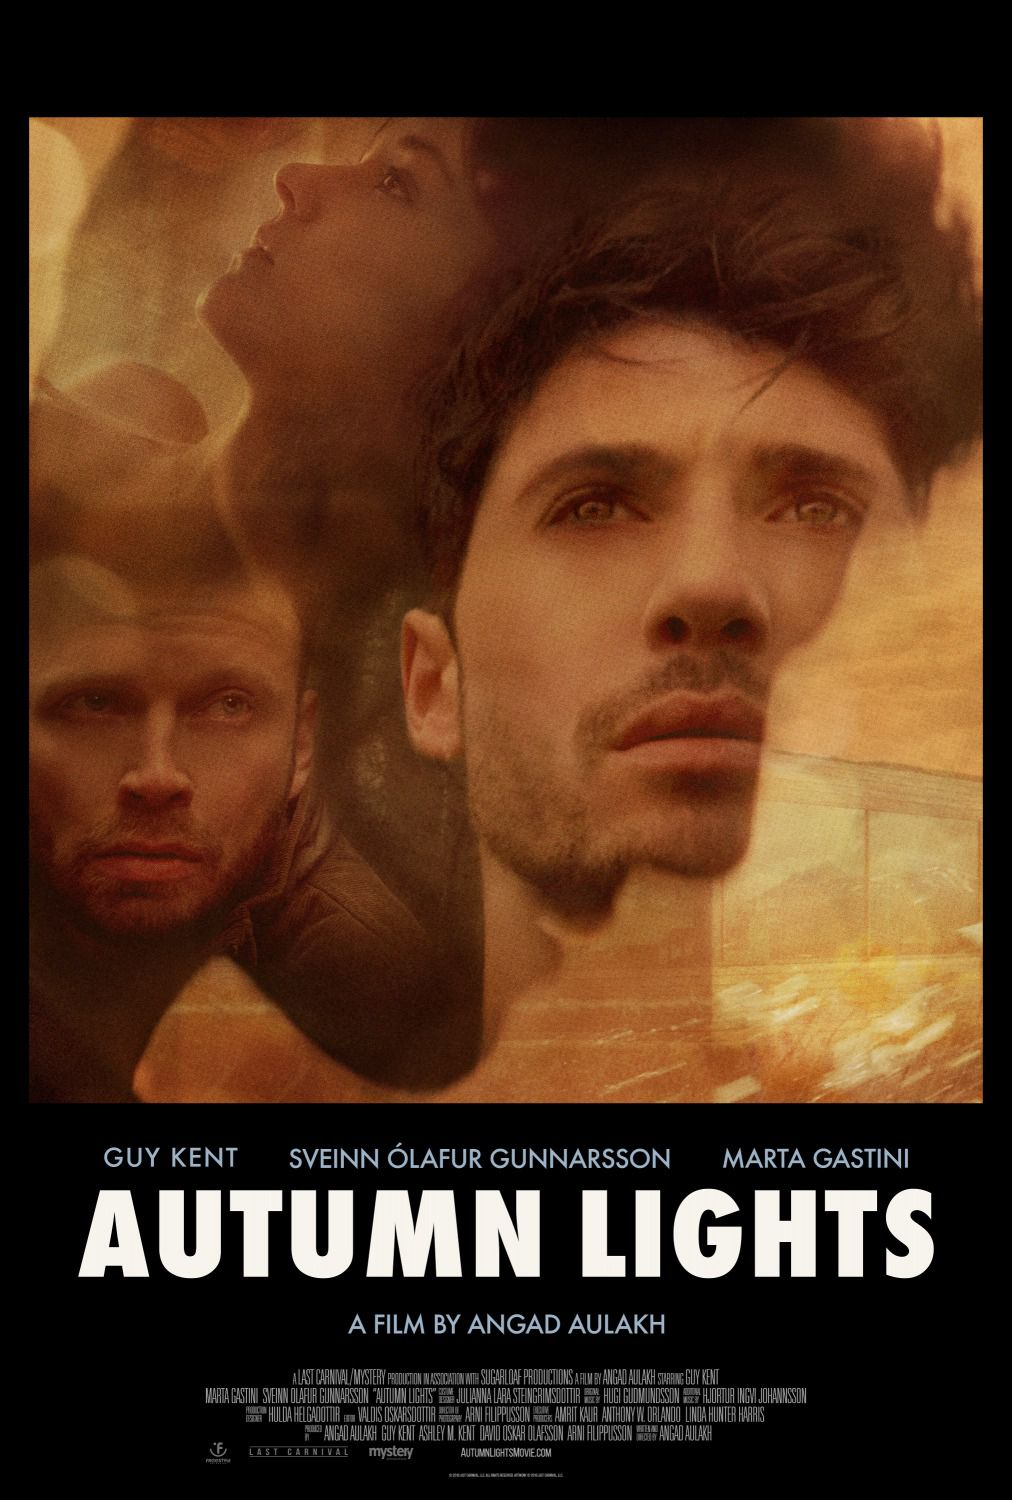 Autumn Lights - Cast: Guy Kent, Sveinn Olafur Gunnarsson, Marta Gastini - film poster